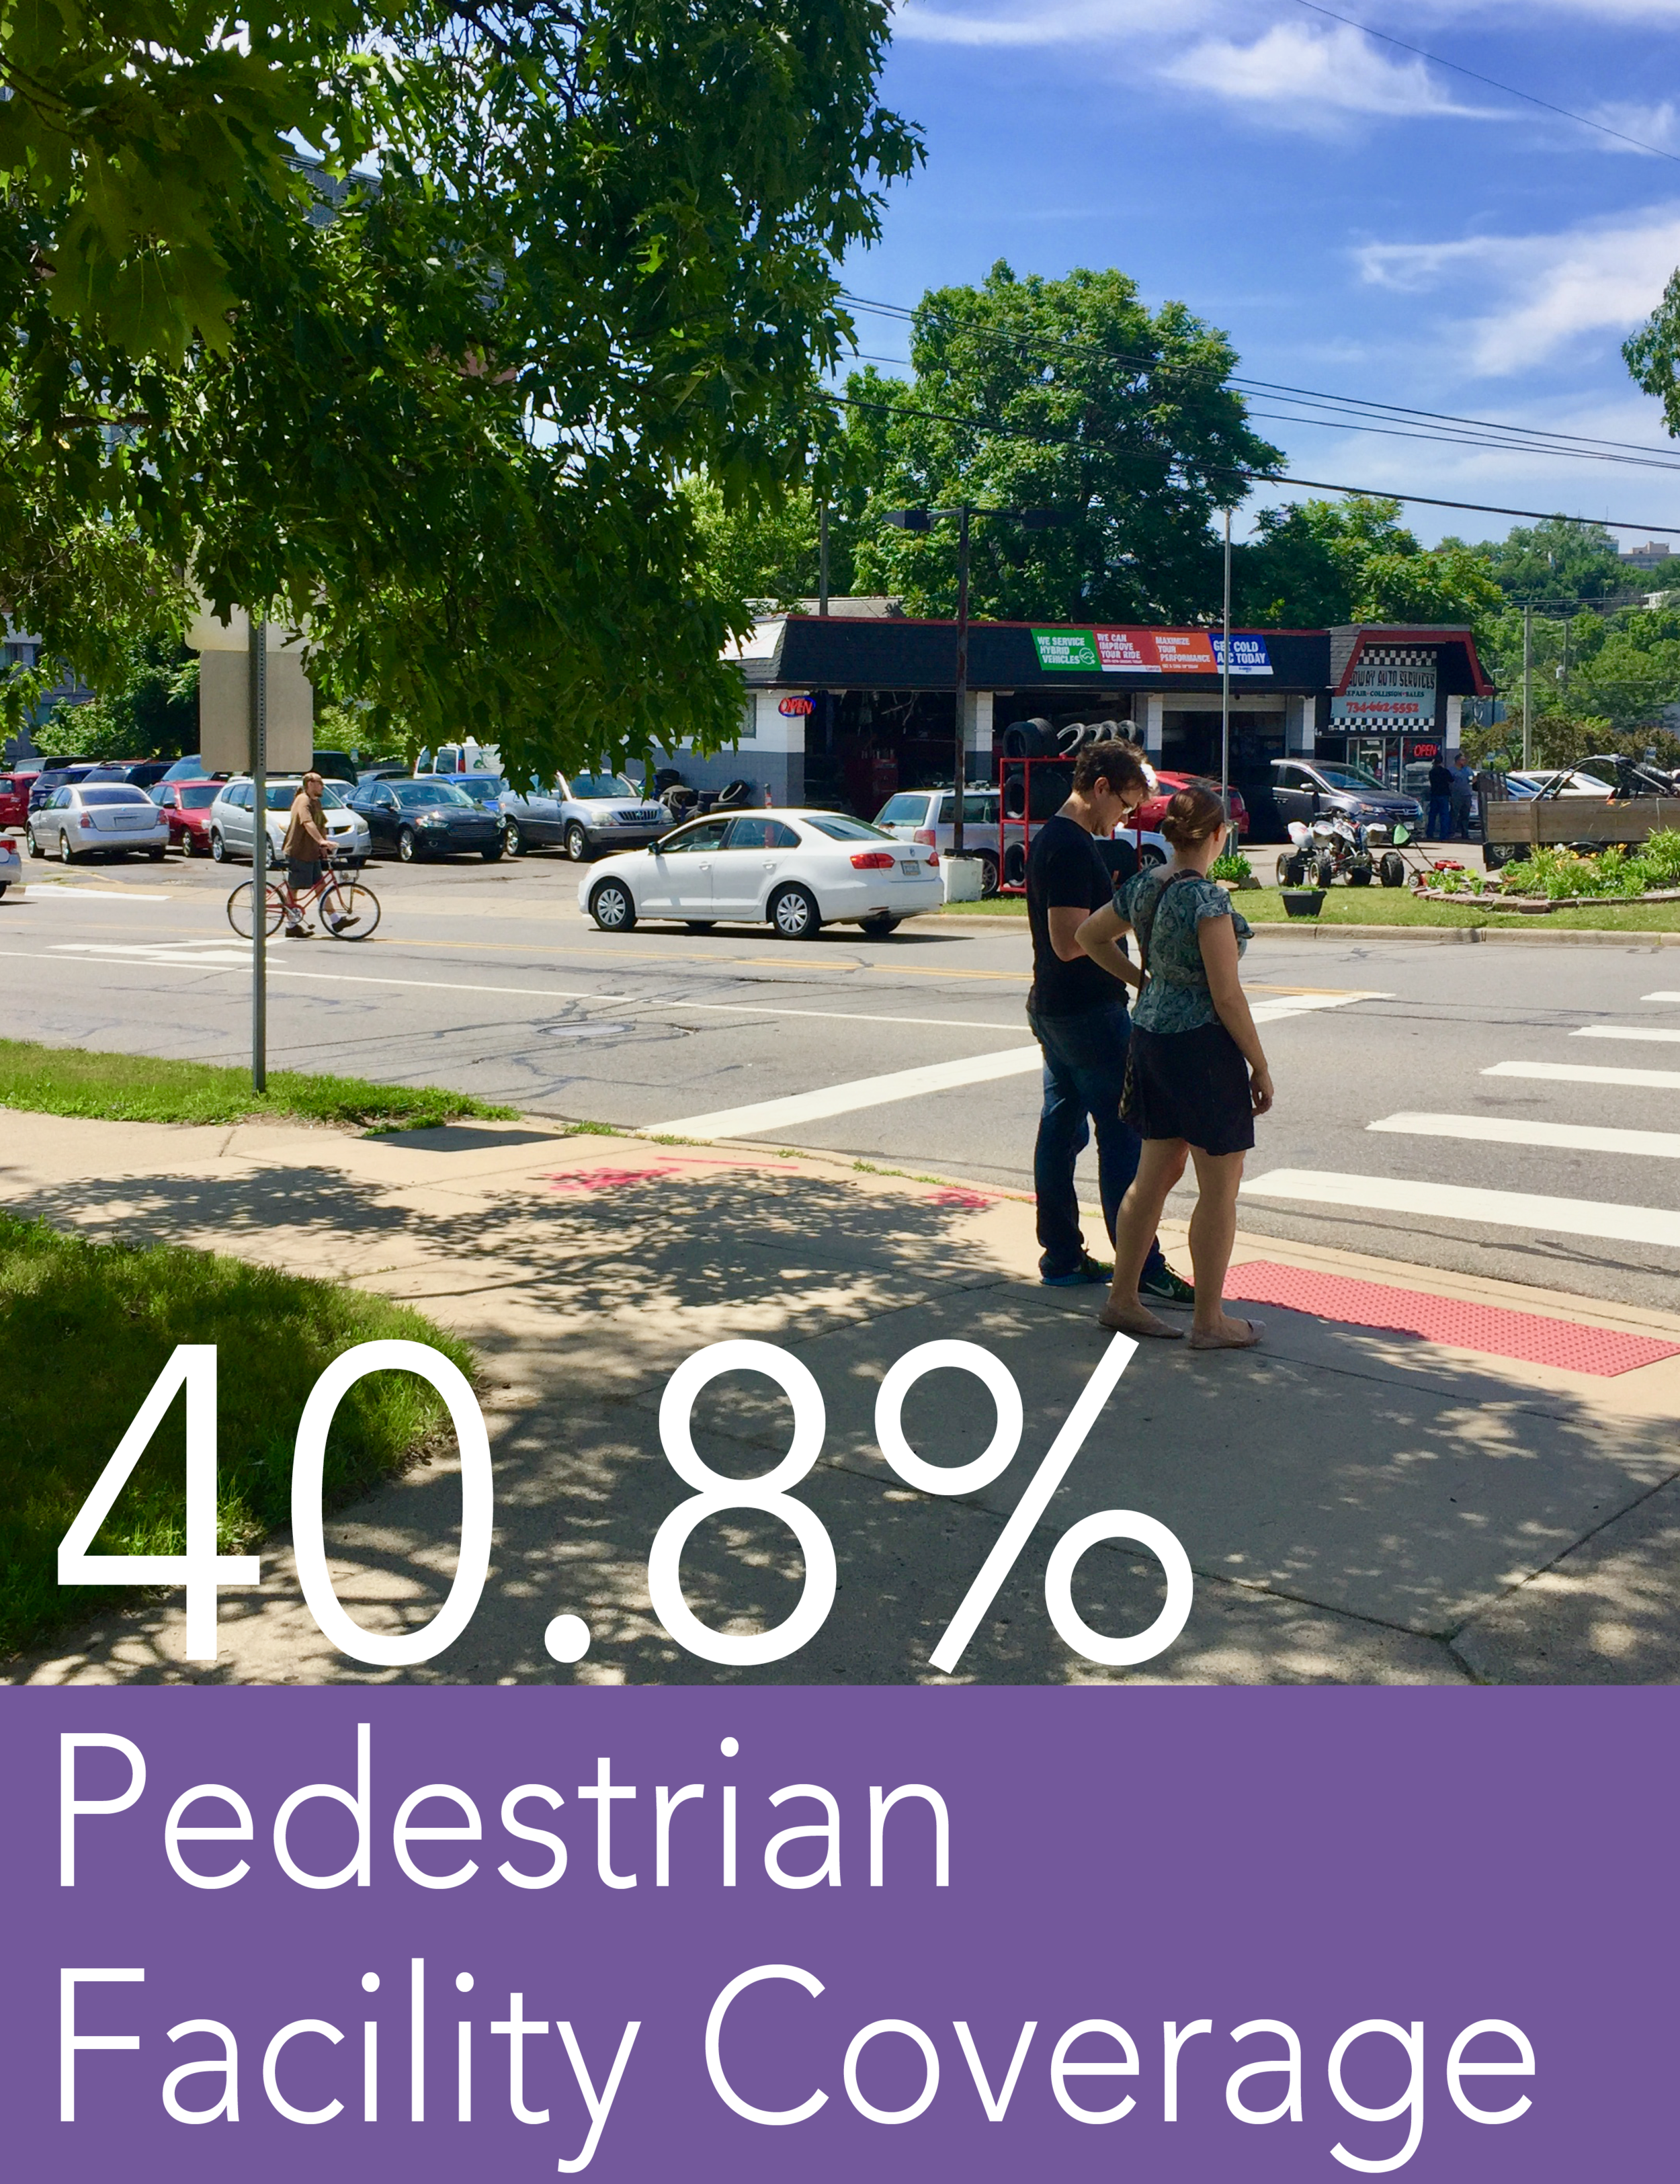 pedestrian facility coverage.png